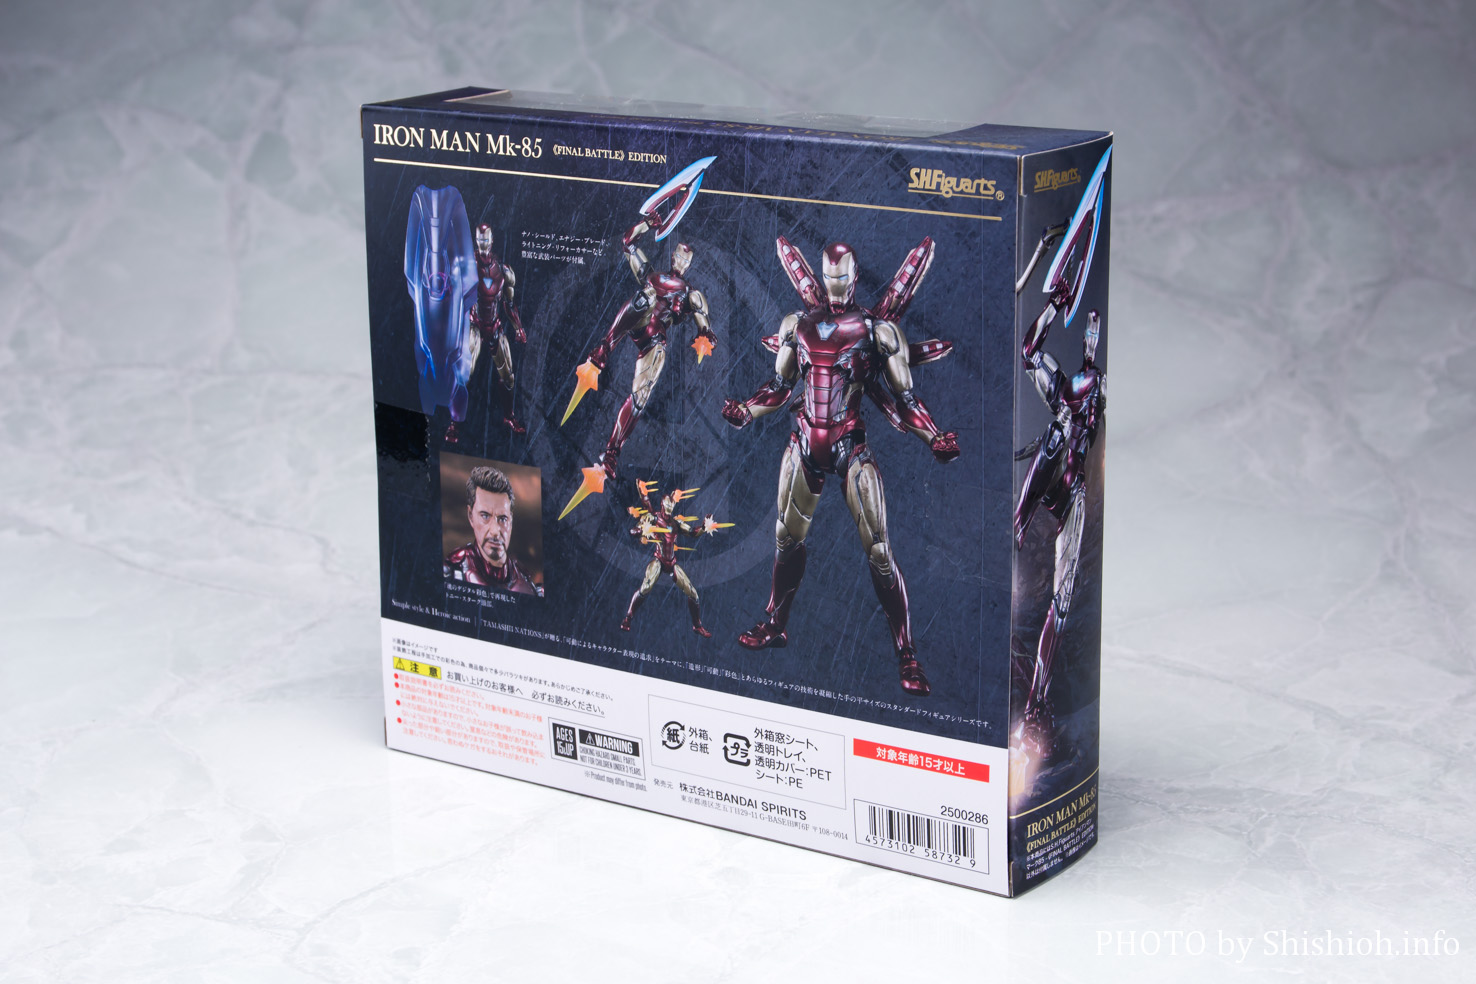 S.H.Figuarts アイアンマン マーク85 -《FINAL BATTLE》EDITION-